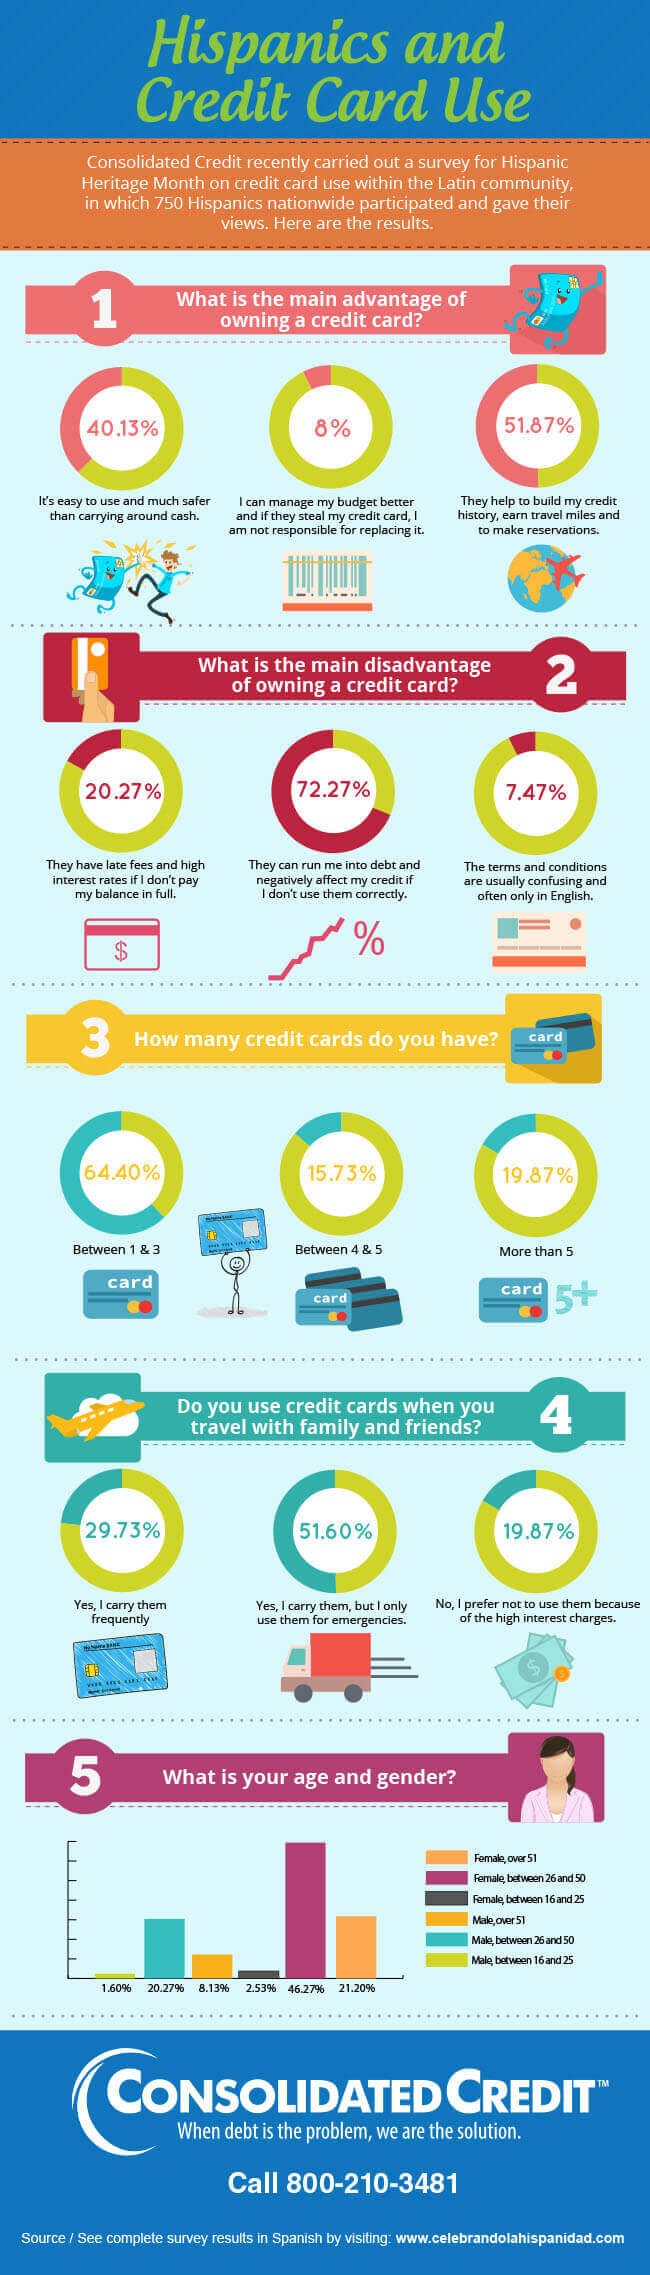 A look at how Hispanics feel about and use credit cards